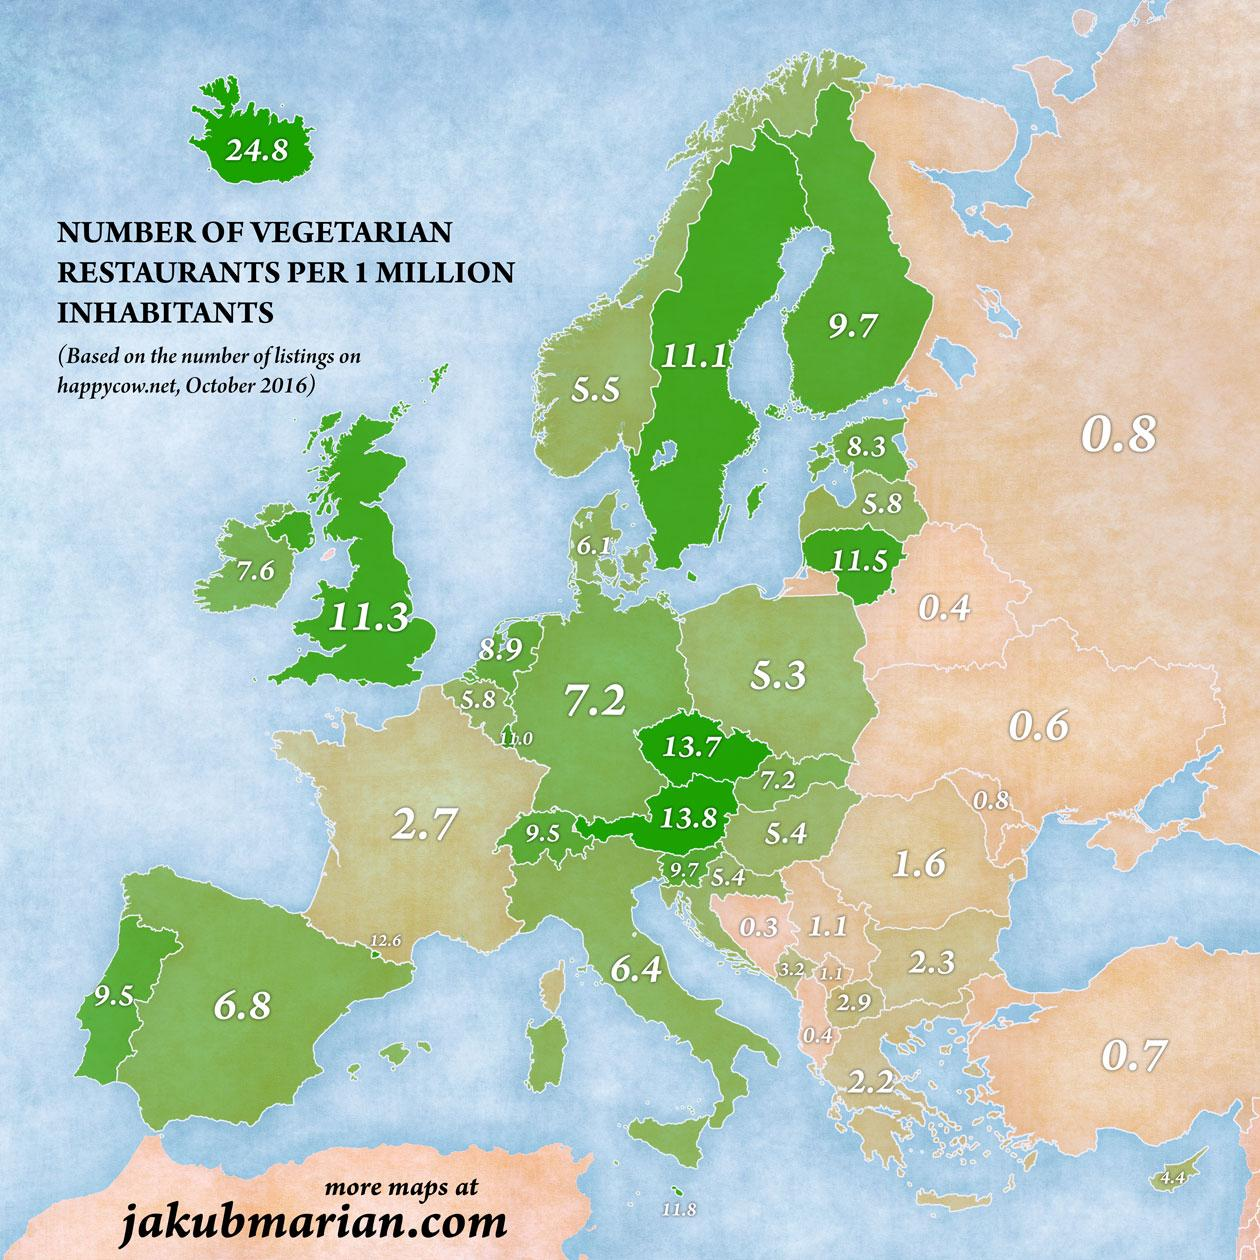 A map of most vegetarian friendly countries in Europe | indy100 Map Of Countries Ineurope on map of africa, map of bangladesh, map of brazil, map of romania, map of europe, map of mexico, map of canada, map of hemispheres, map of continents, map of united kingdom, map of philippines, map of italy, map of greece, map of states, map of asia, map of oceans, map of world, map of germany, map of country,